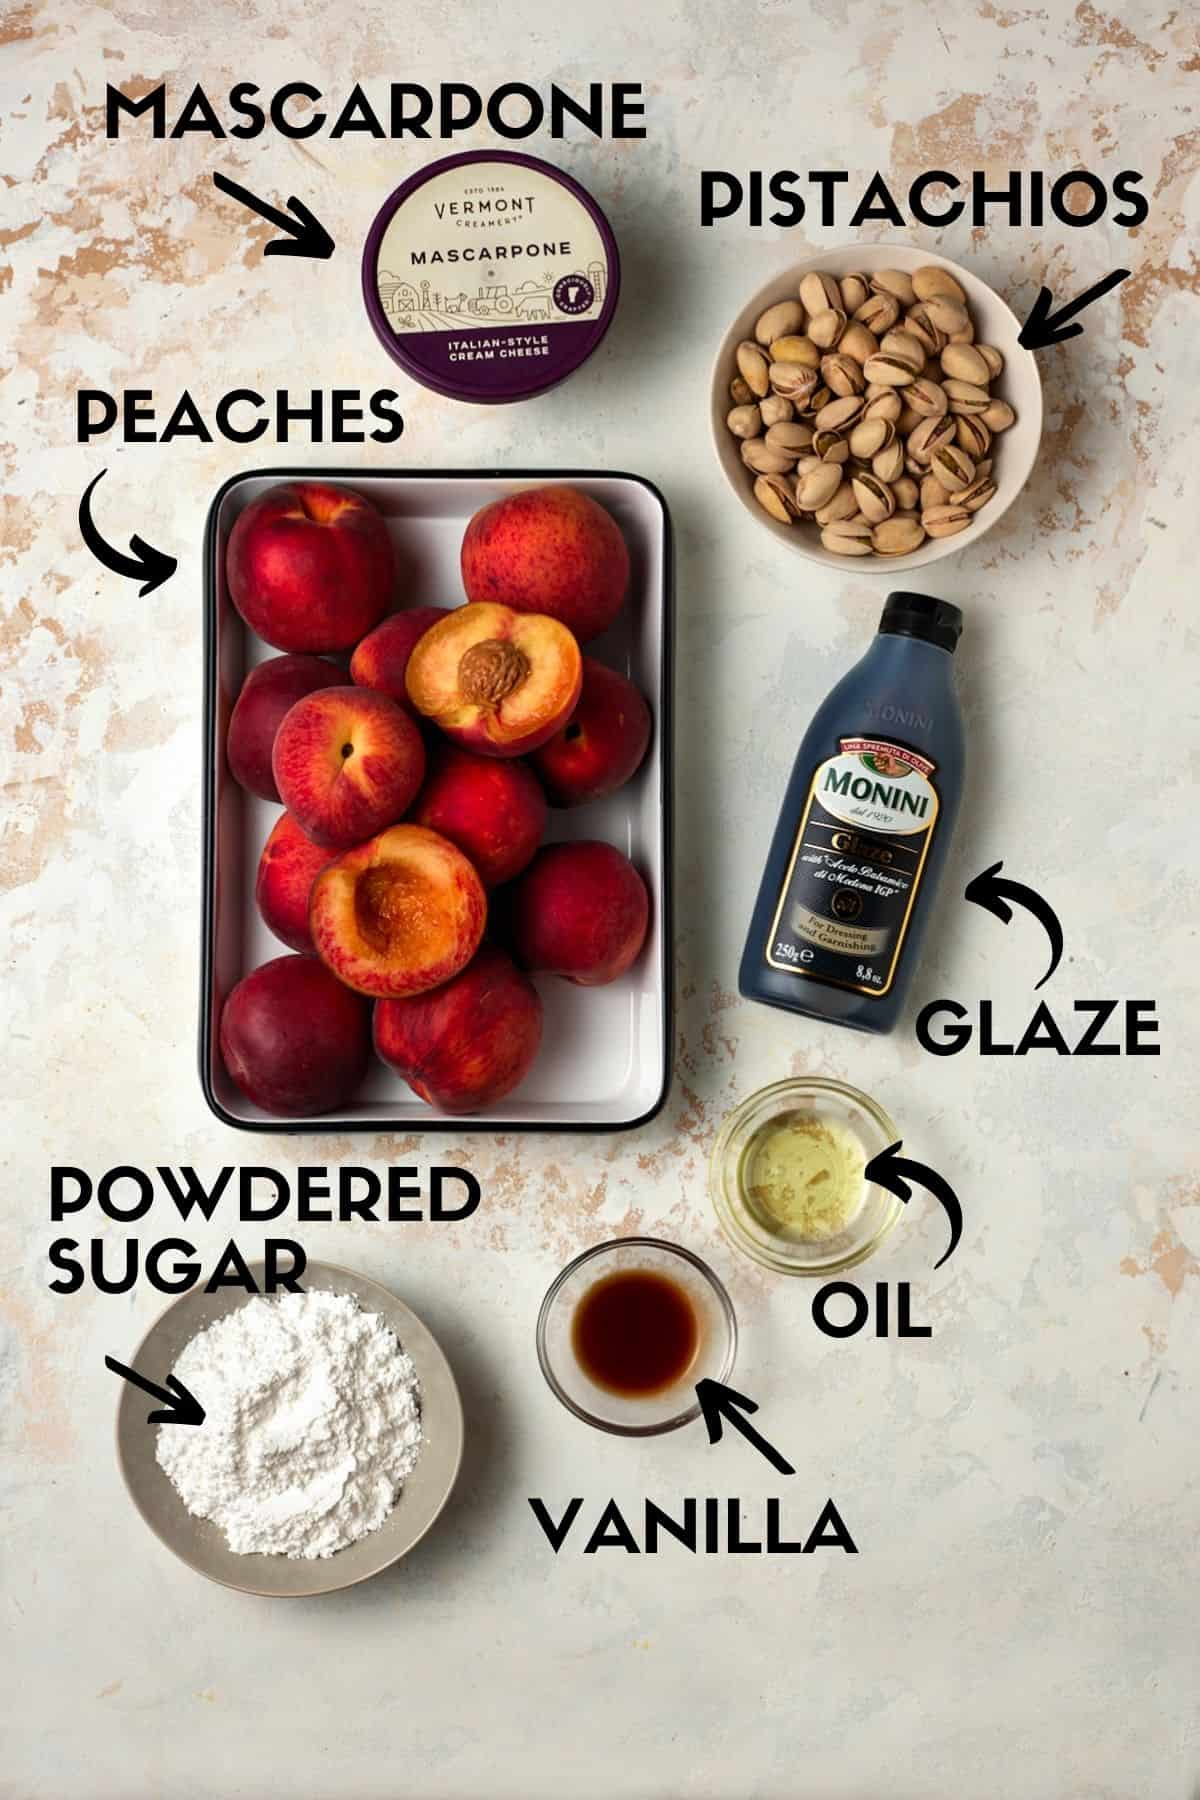 Ingredients for Grilled Peaches including peaches, pistachios and mascarpone cheese.